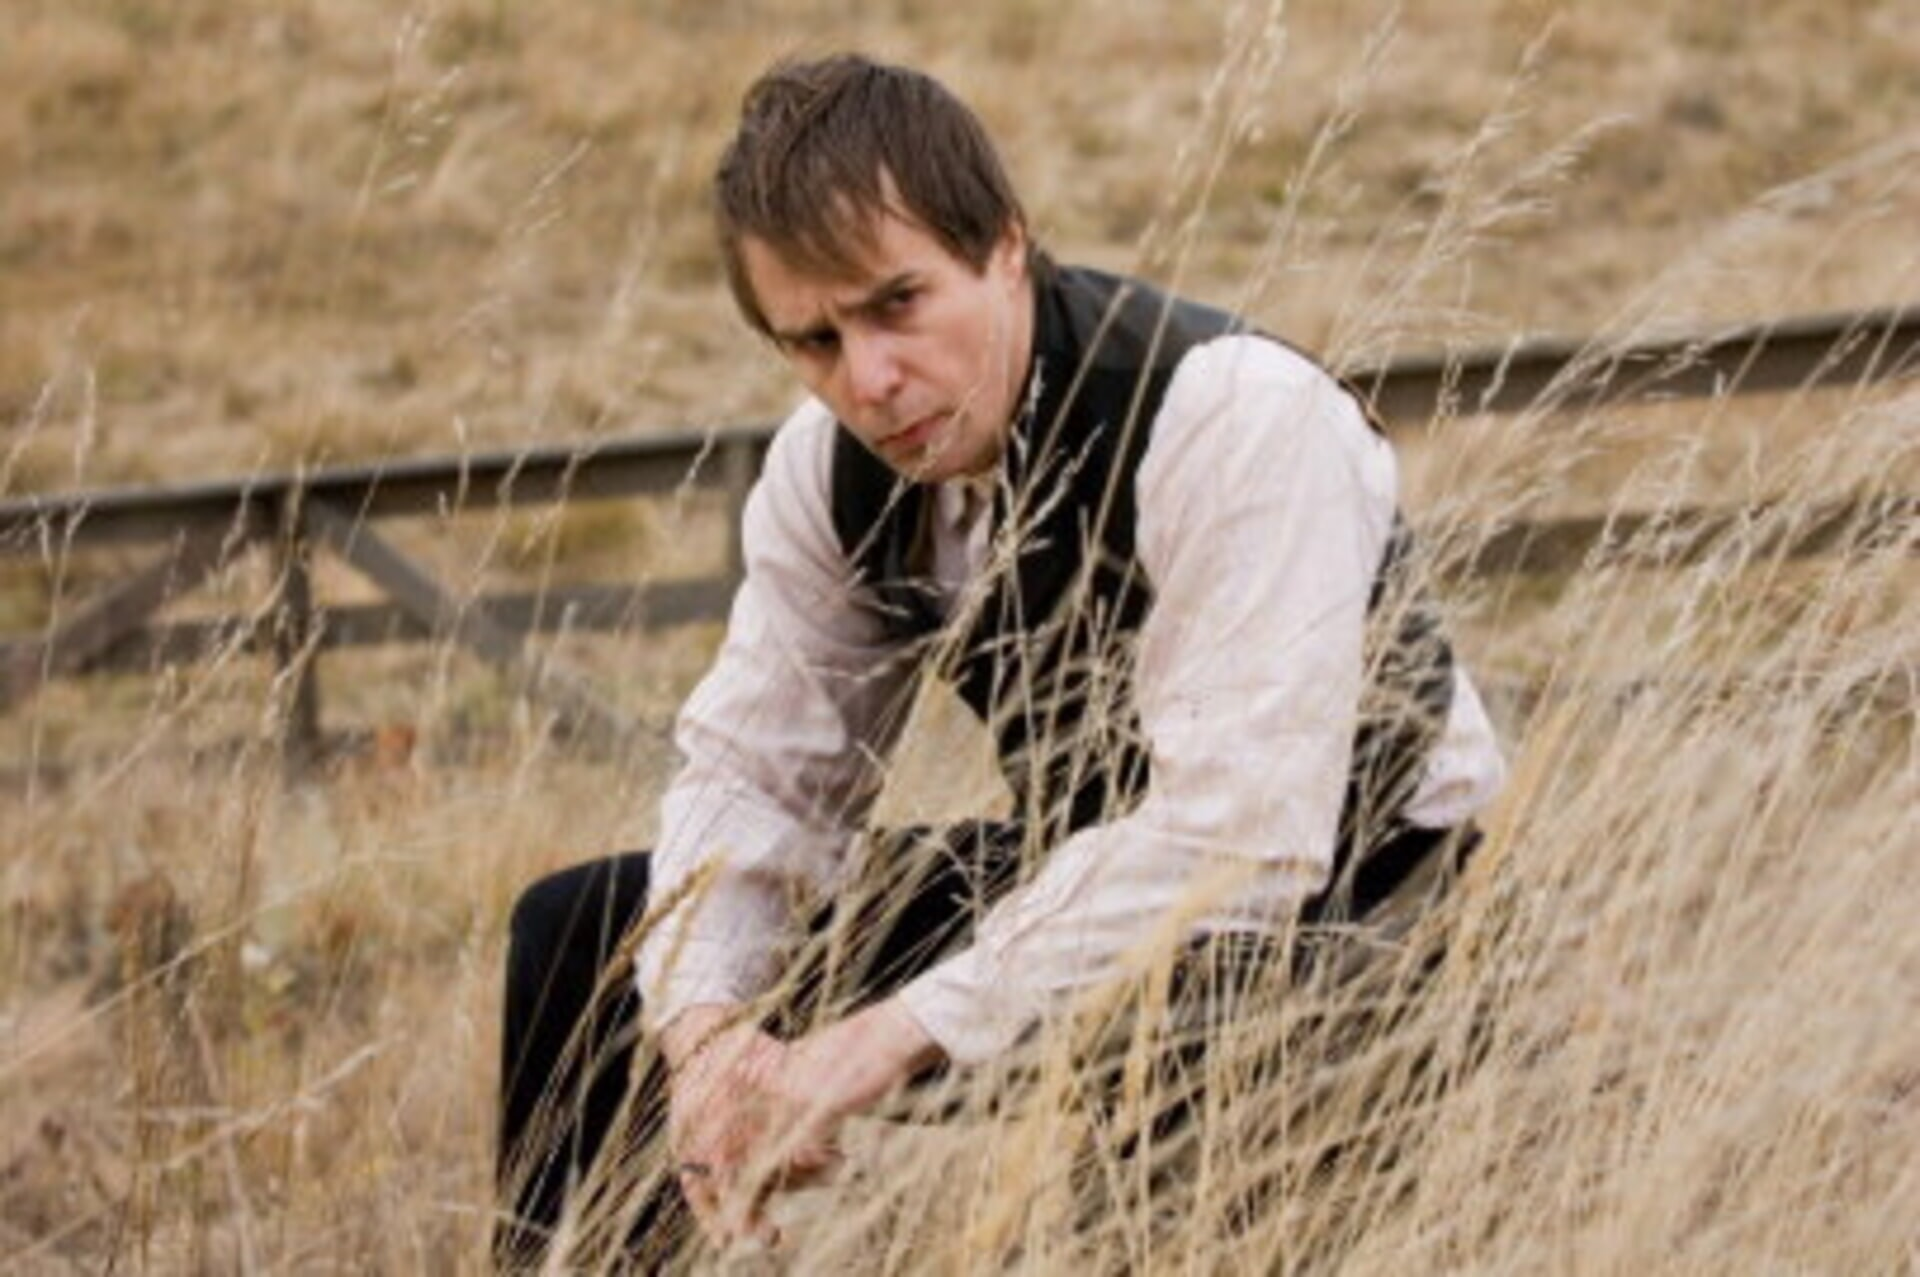 The Assassination of Jesse James by the Coward Robert Ford - Image 8